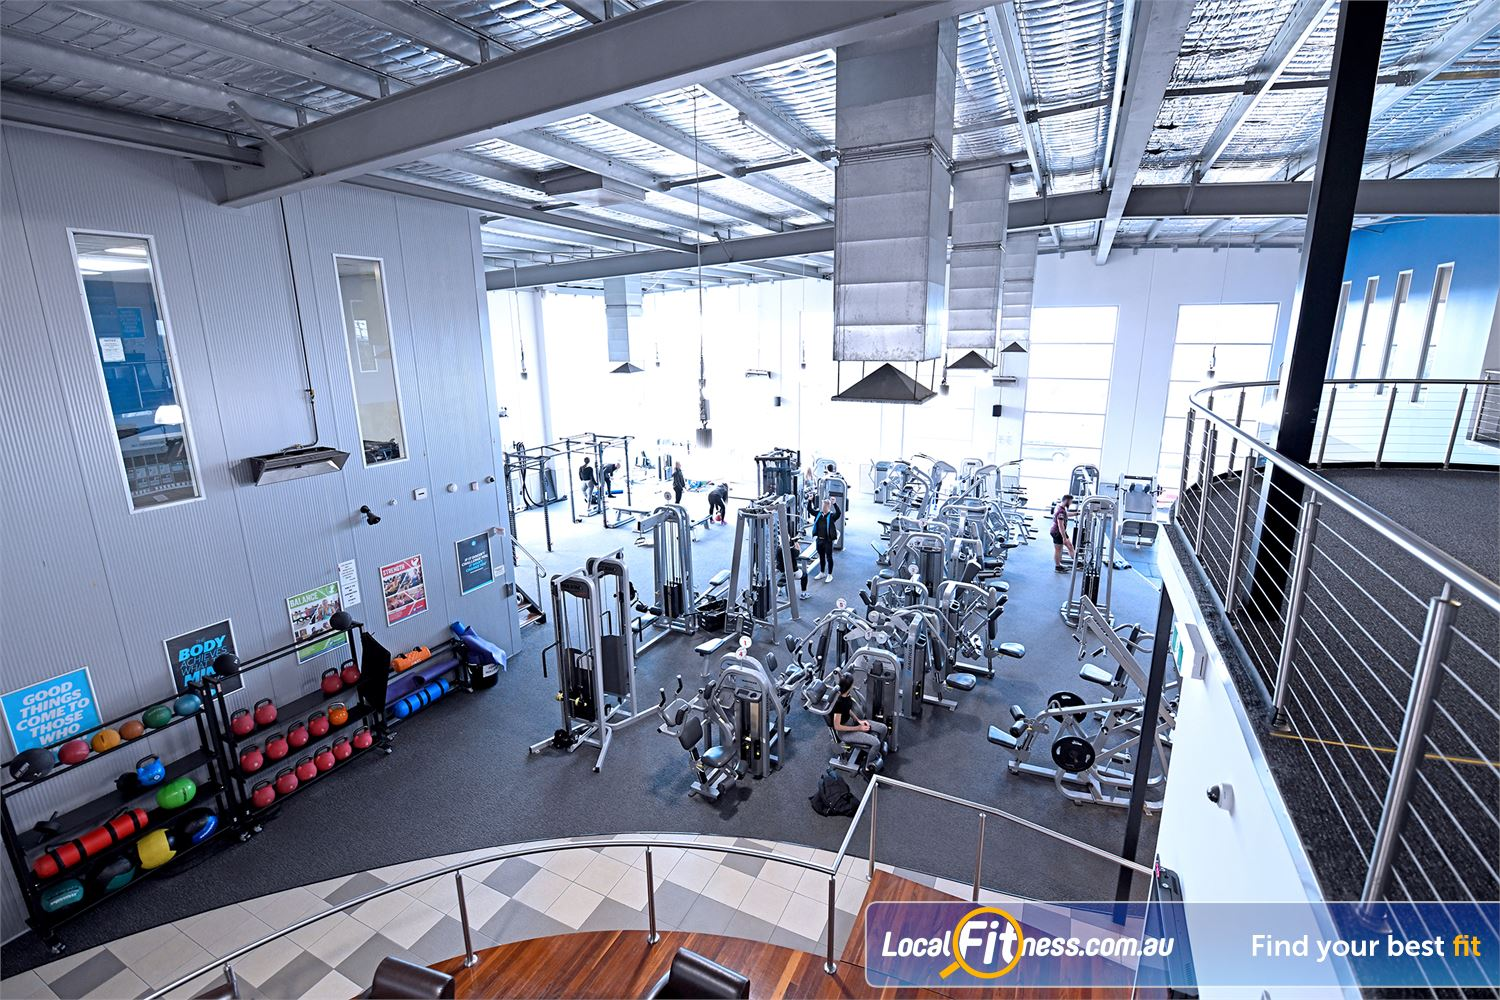 Goodlife Health Clubs Geelong Welcome to the Goodlife 24 hour Geelong gym.